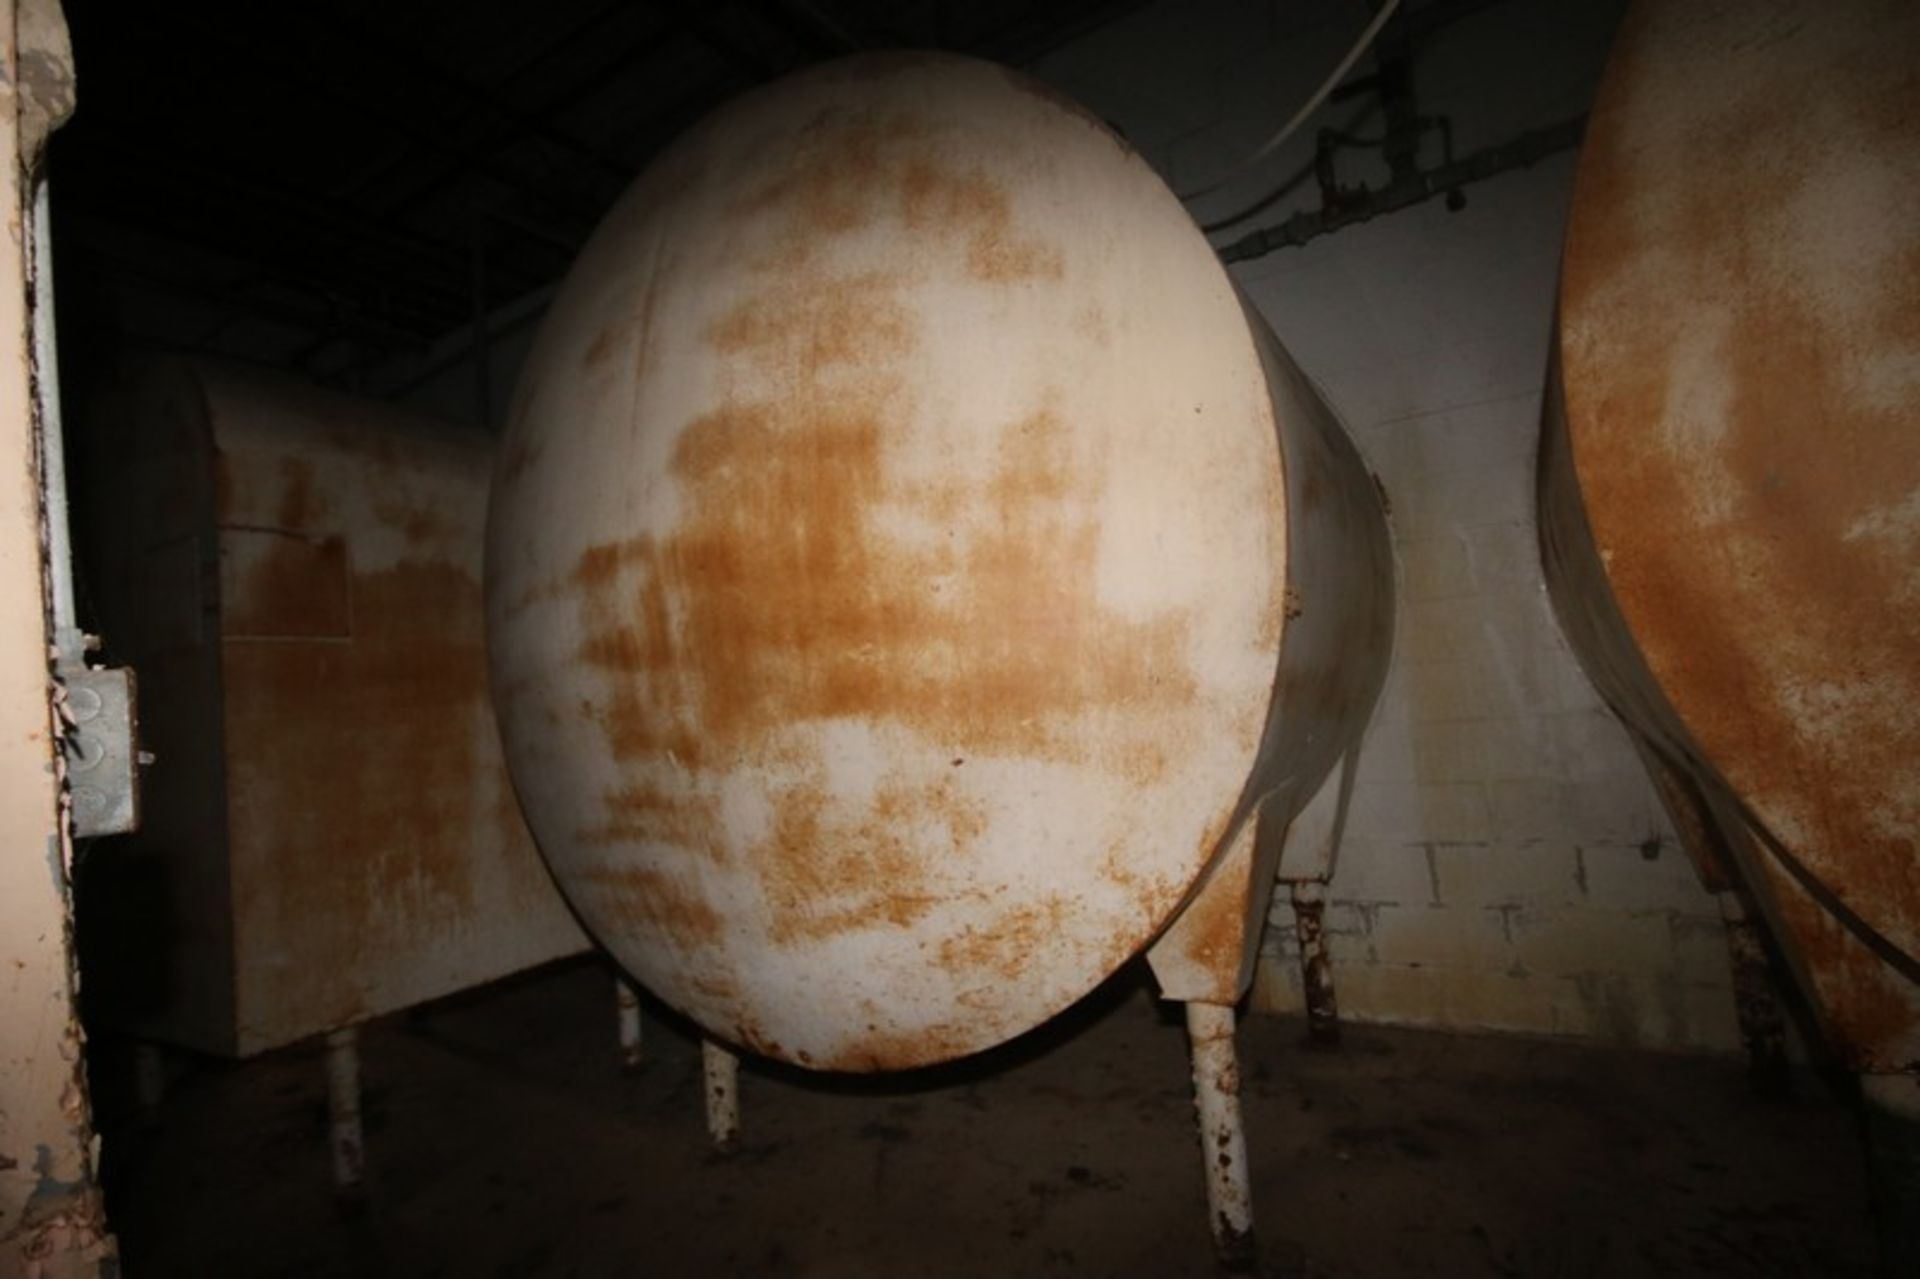 """Aprox. 1,750 Gal S/S Horizontal Tank, with Carbon Steel Sheathing, Dish Heads, Tank Dims.: Aprox 84"""" - Image 4 of 5"""